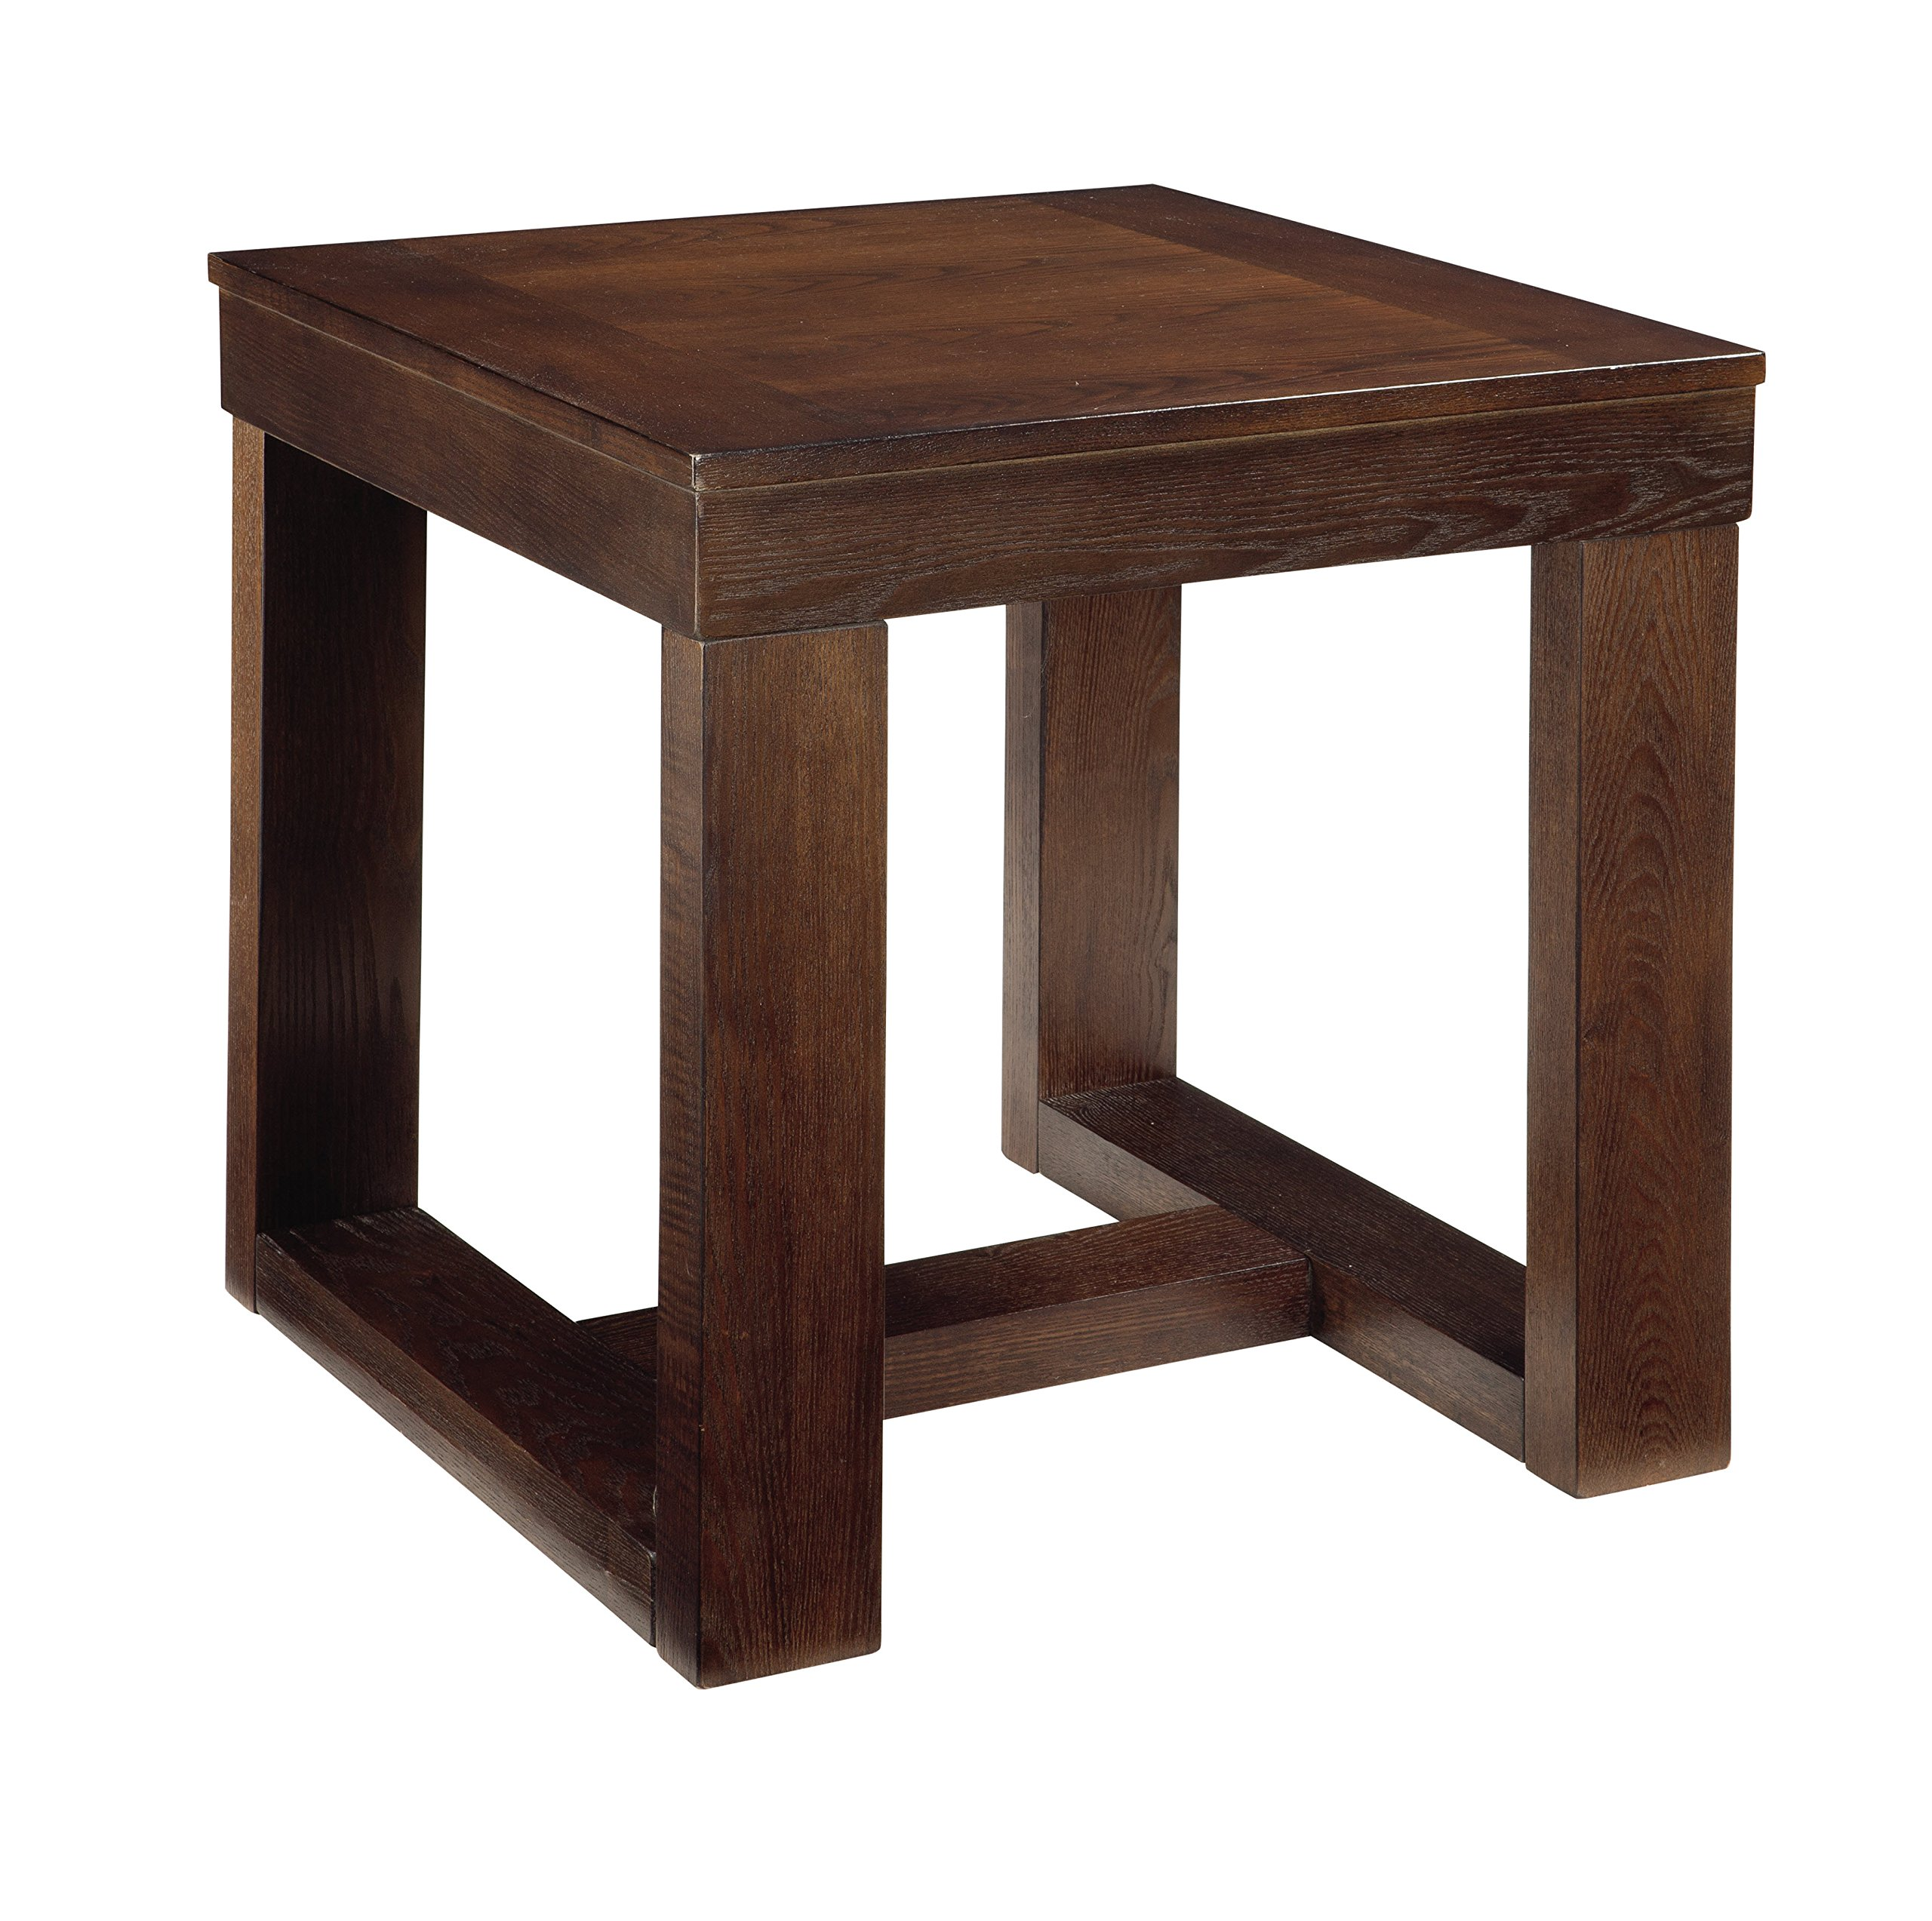 Ashley Furniture Signature Design - Watson End Table - Square - Contemporary with Decadent Finish - Dark Brown